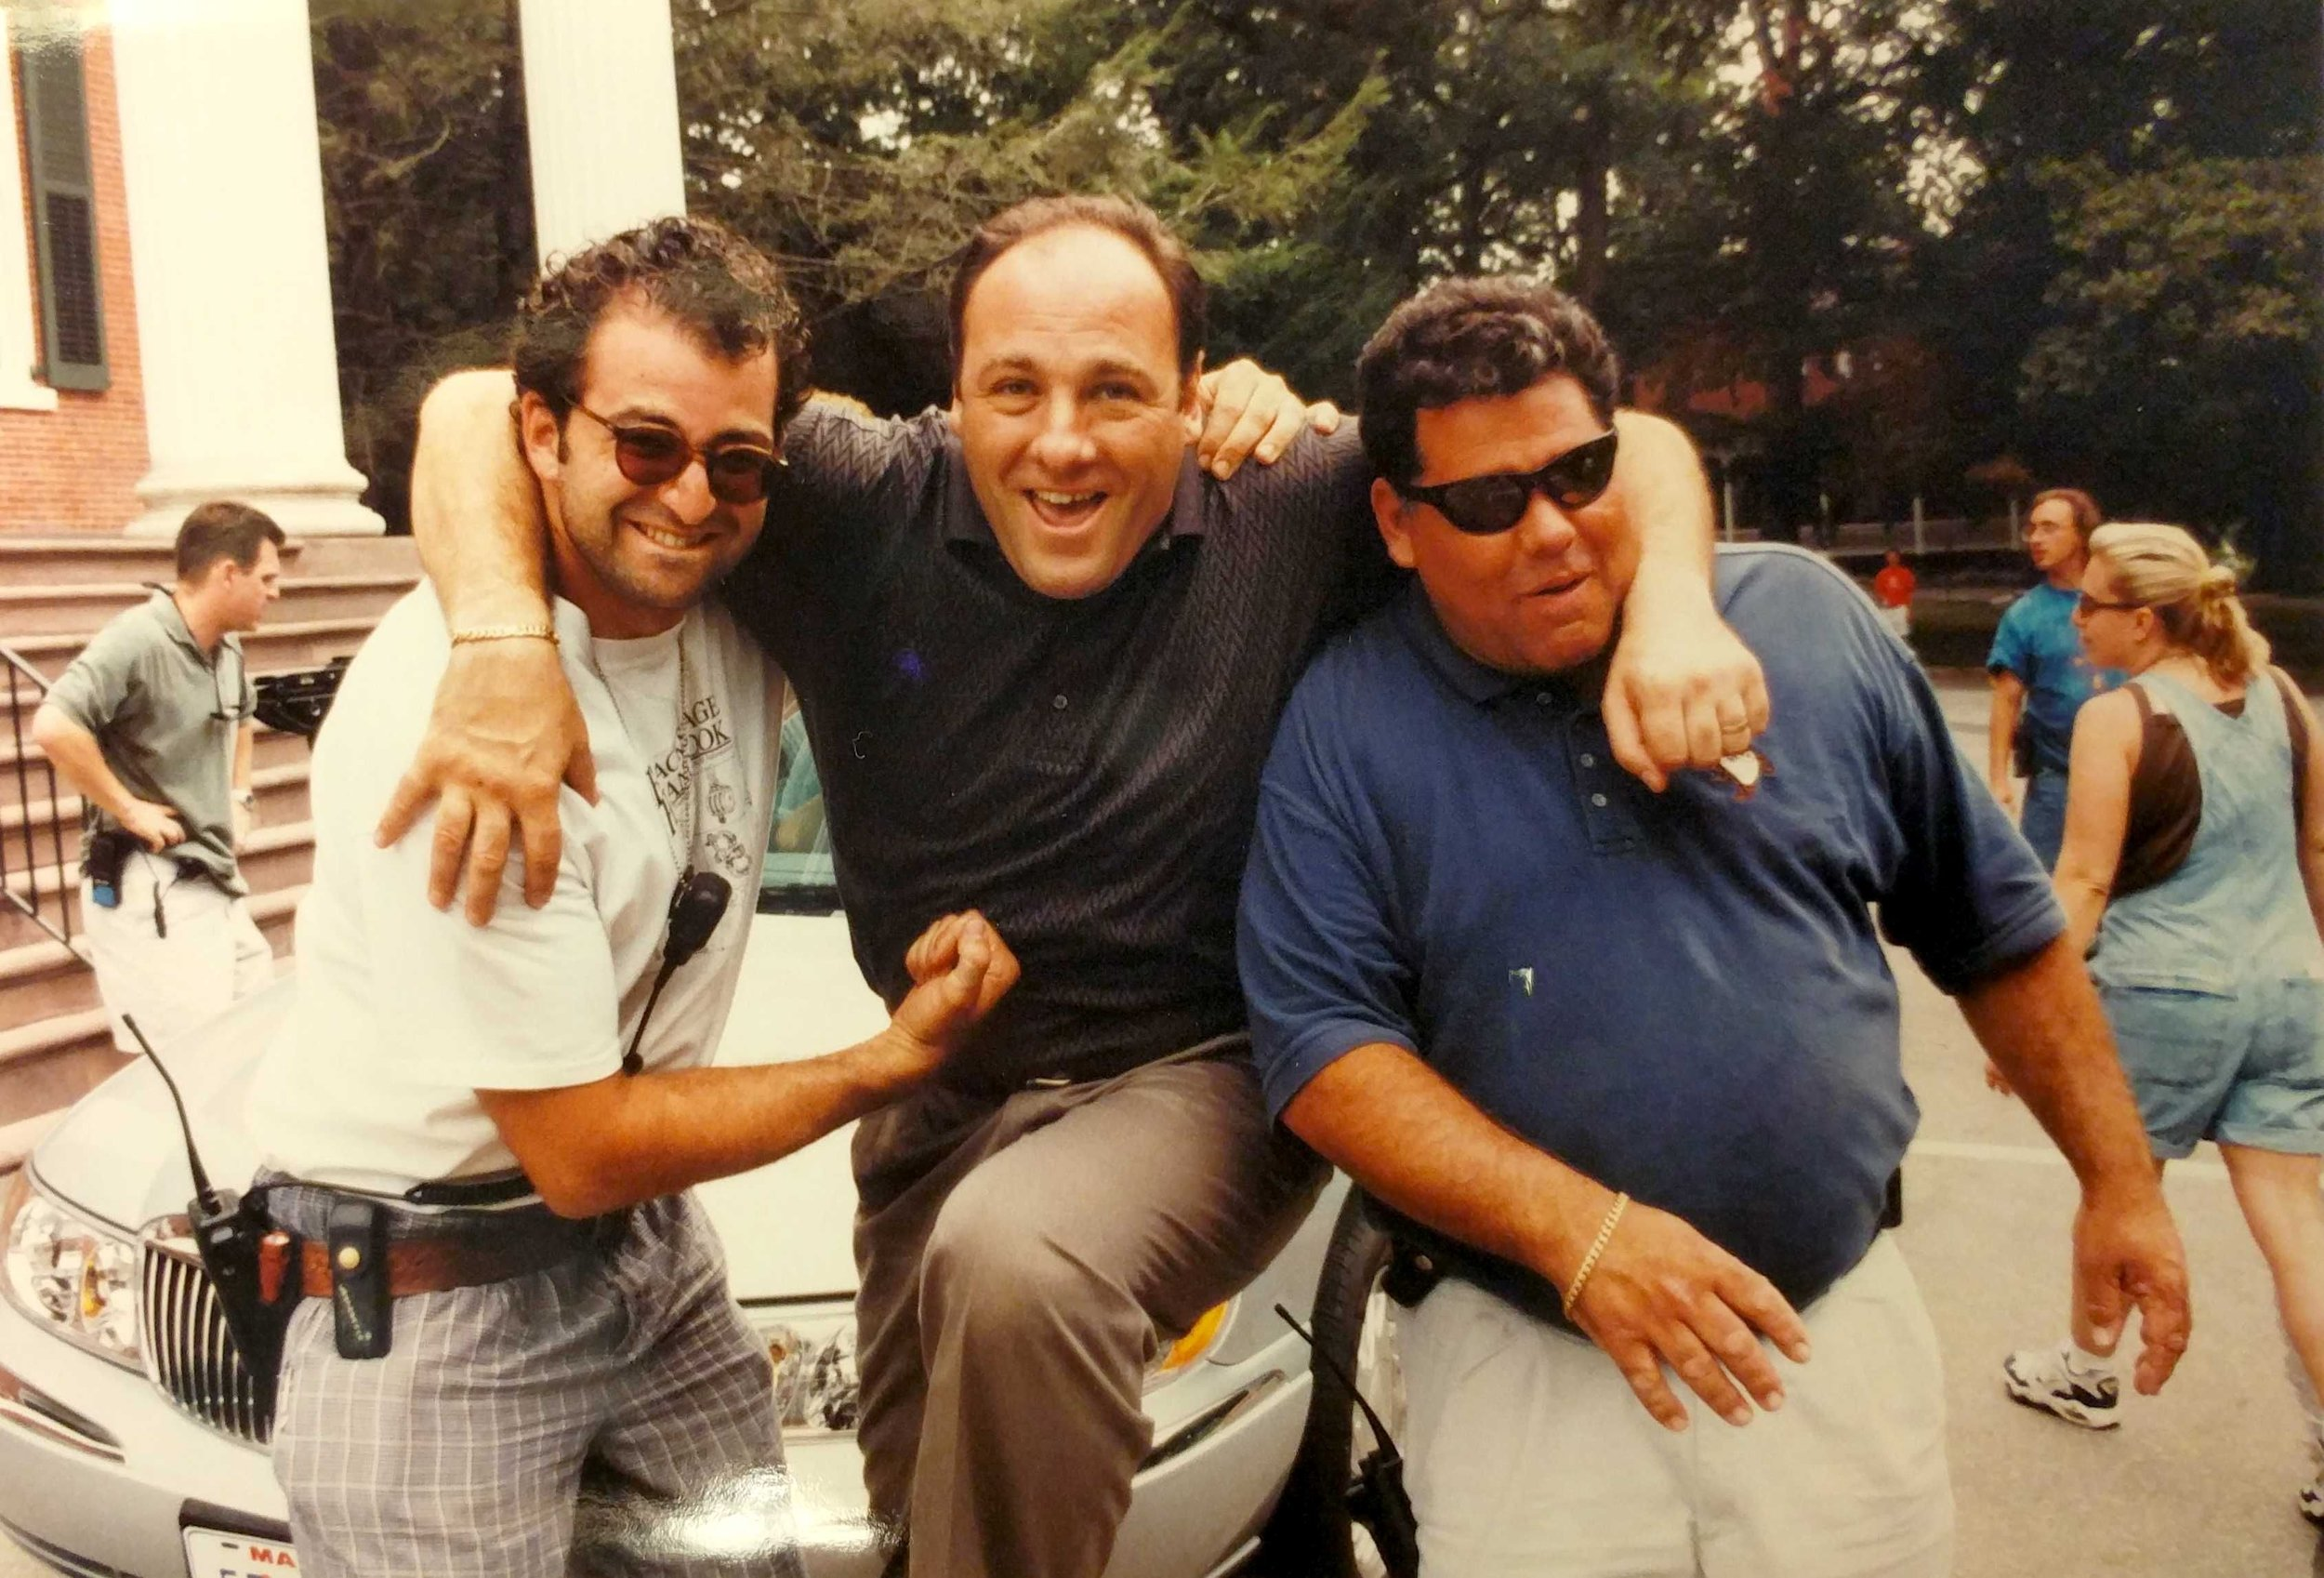 From left to right, Andrew DiMeo, James Gandolfini, and Joseph Badalucco Jr. on the set of The Sopranos